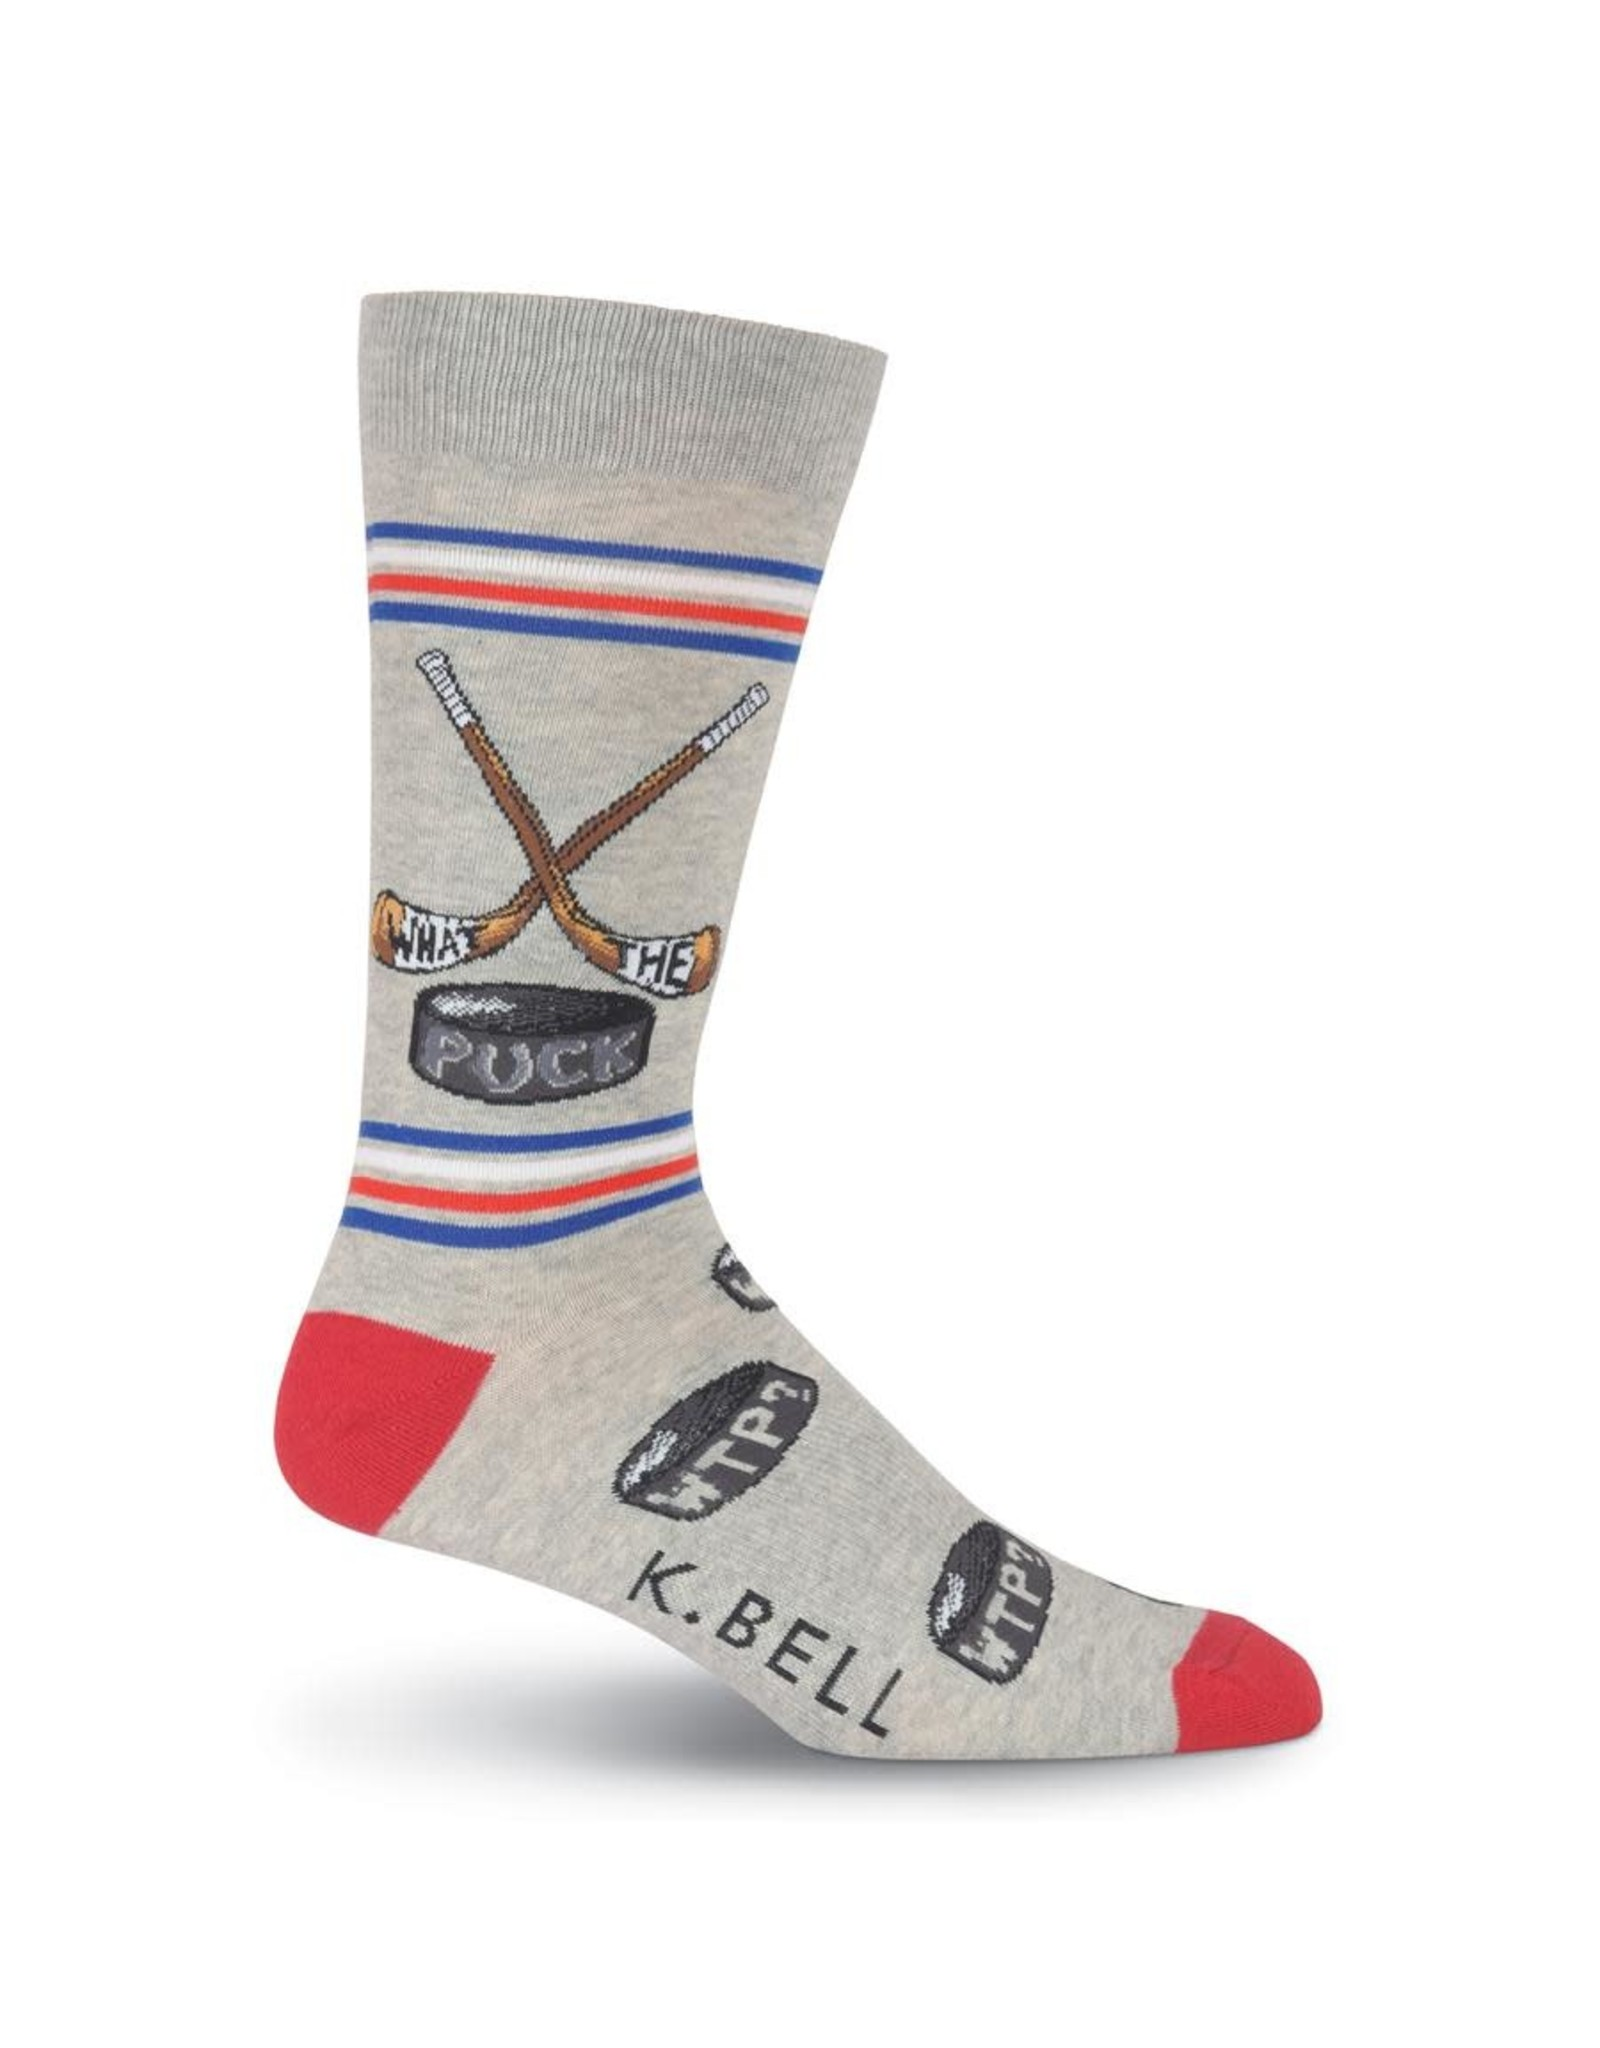 Socks (Mens) - What The Puck - Hockey